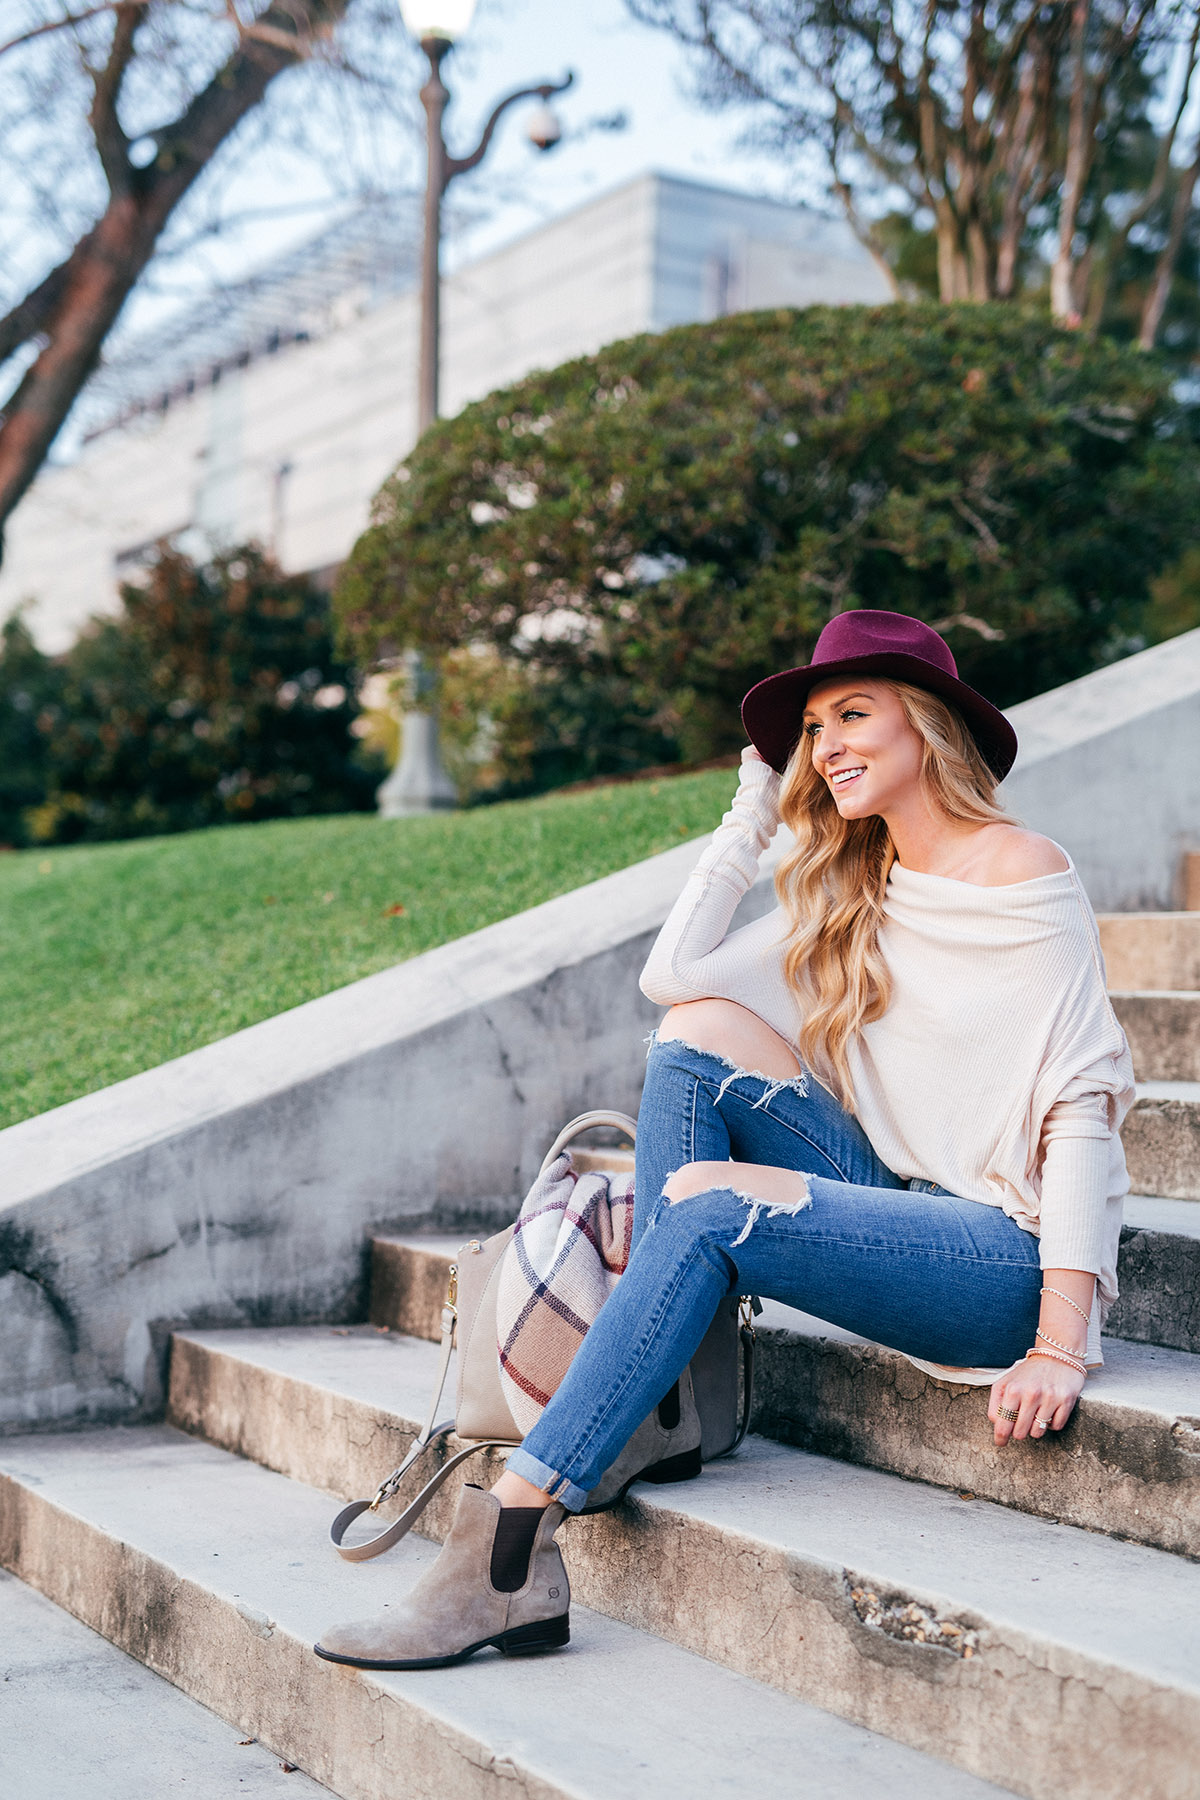 Suede Flat Ankle Boots   Born Casco Boots   Off the shoulder Free People Top